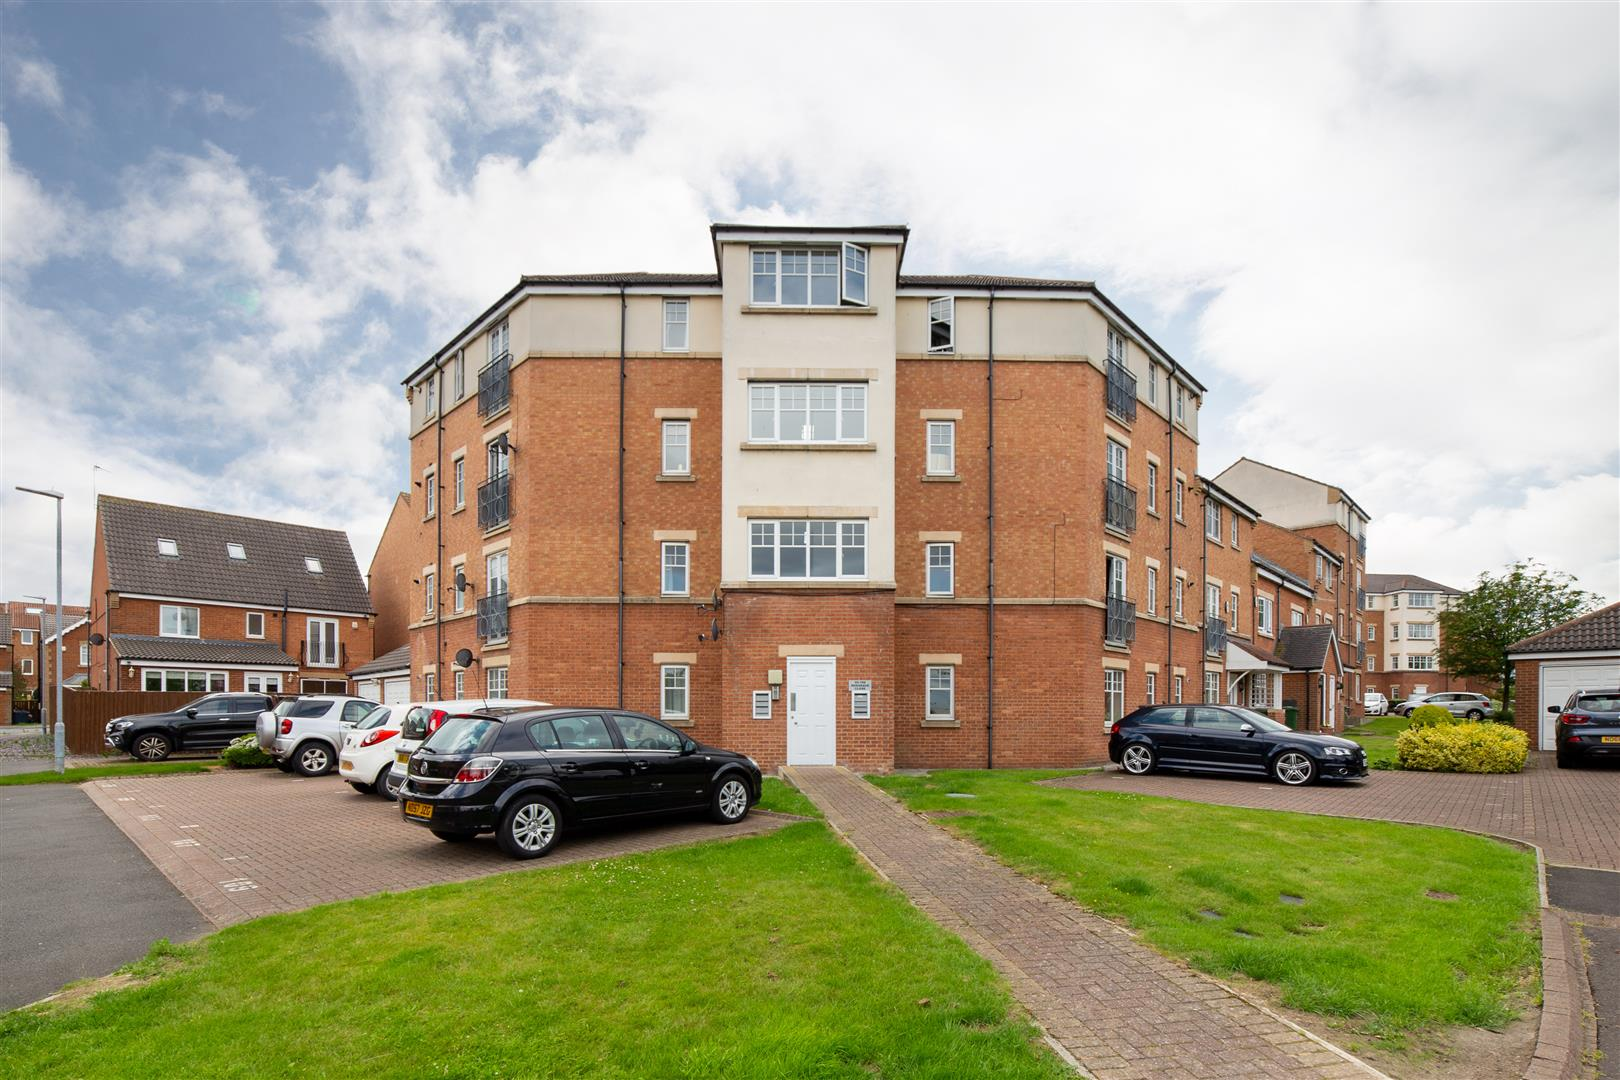 2 bed flat for sale in Gateshead, NE8 3JD  - Property Image 1